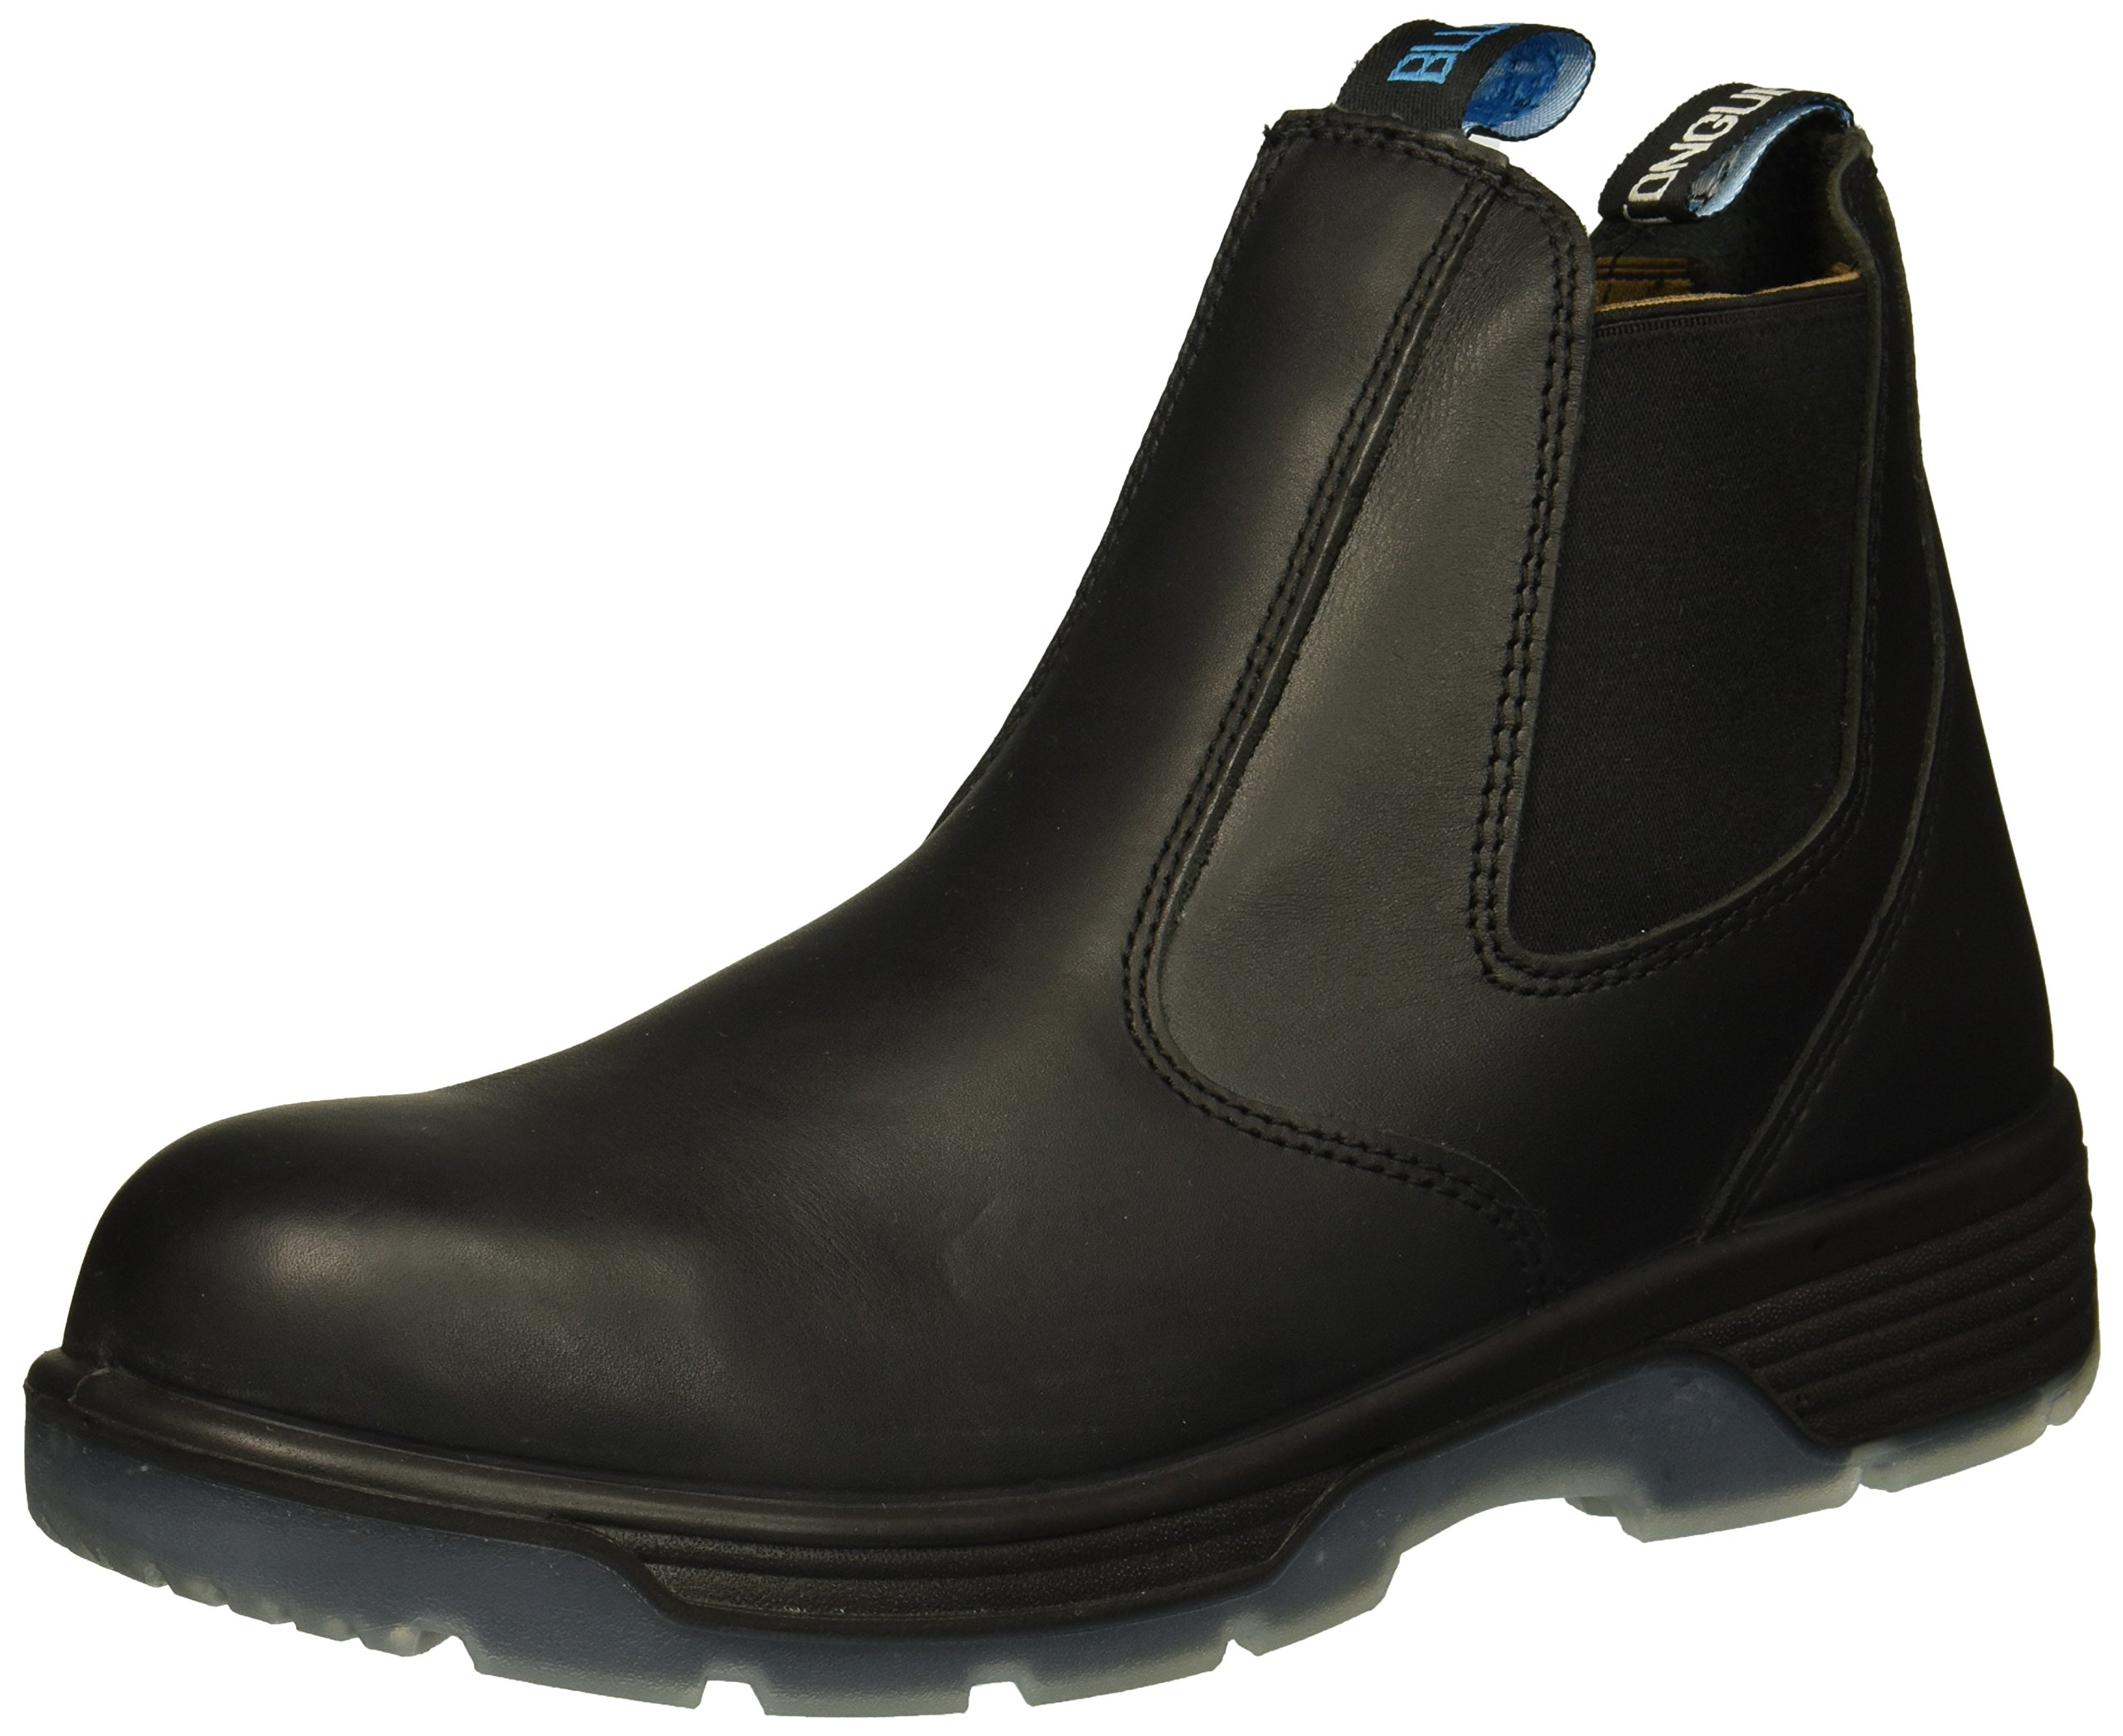 Composite Toe Safety Boot, Size 12